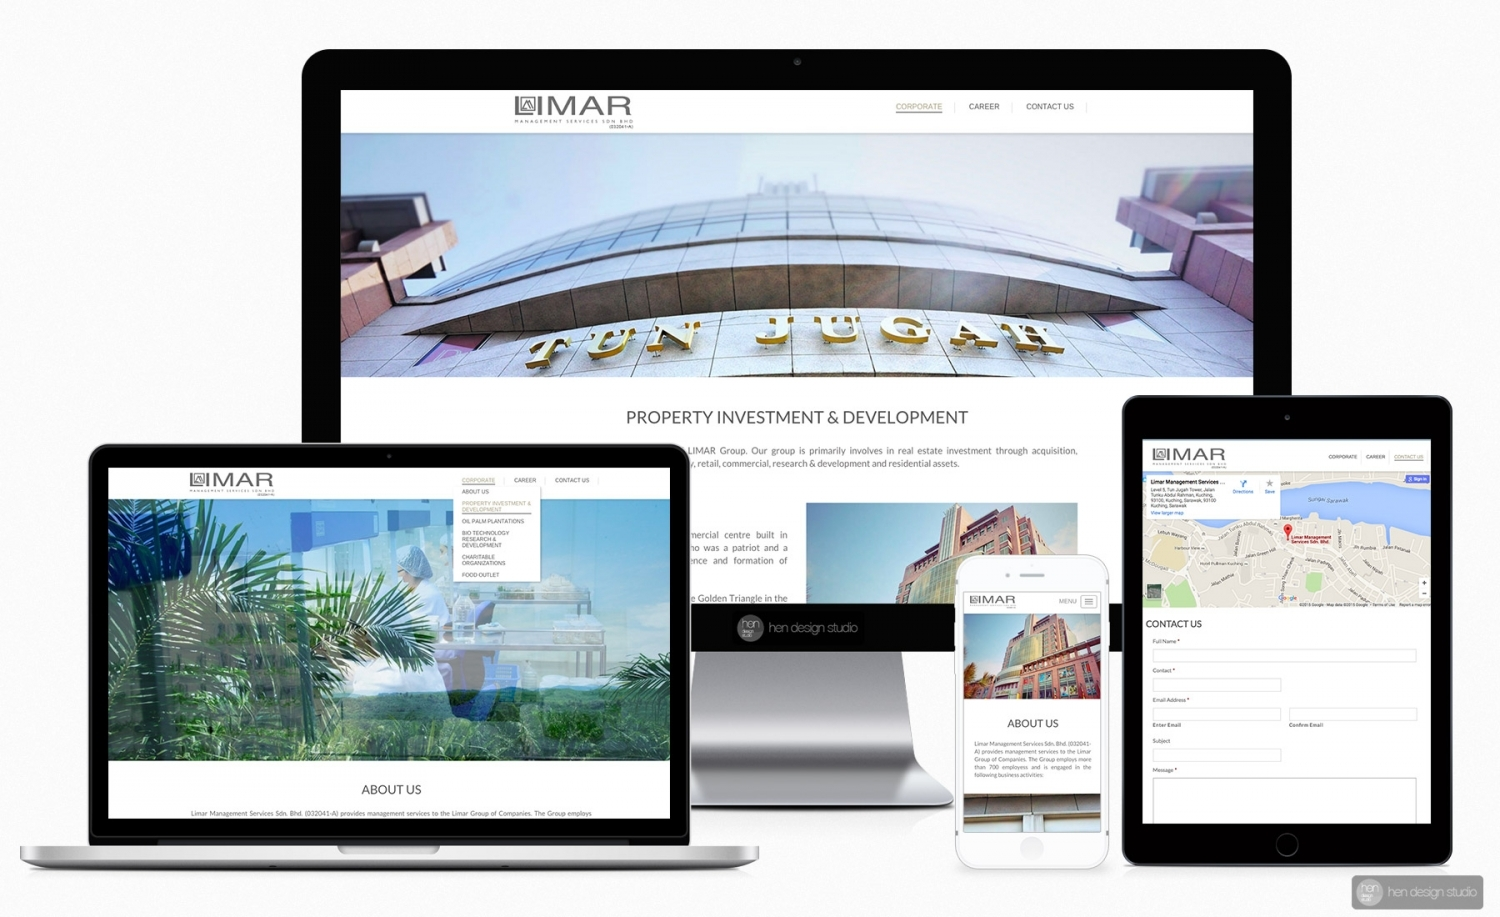 Limar Management Services Sdn. Bhd. corporate website design